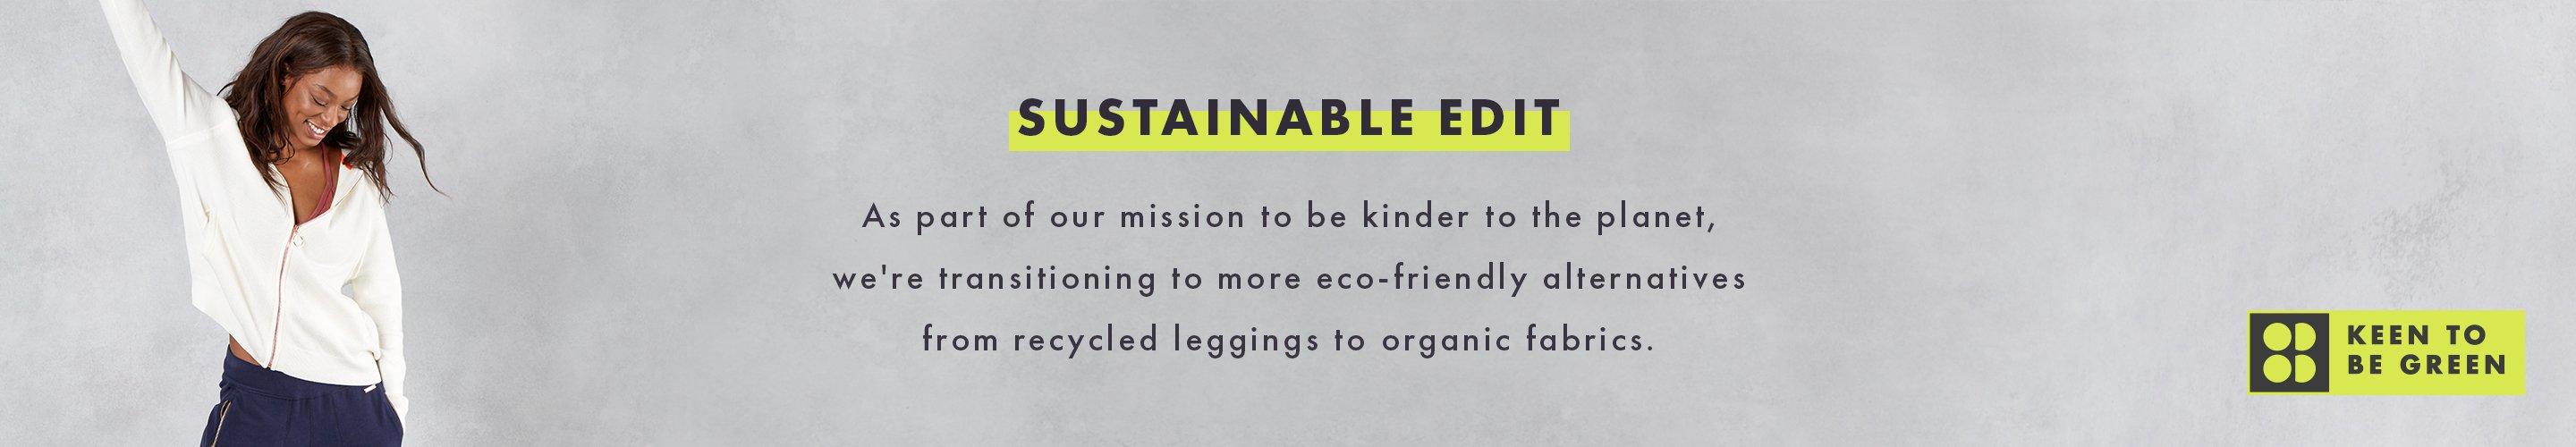 Sustainability Edit